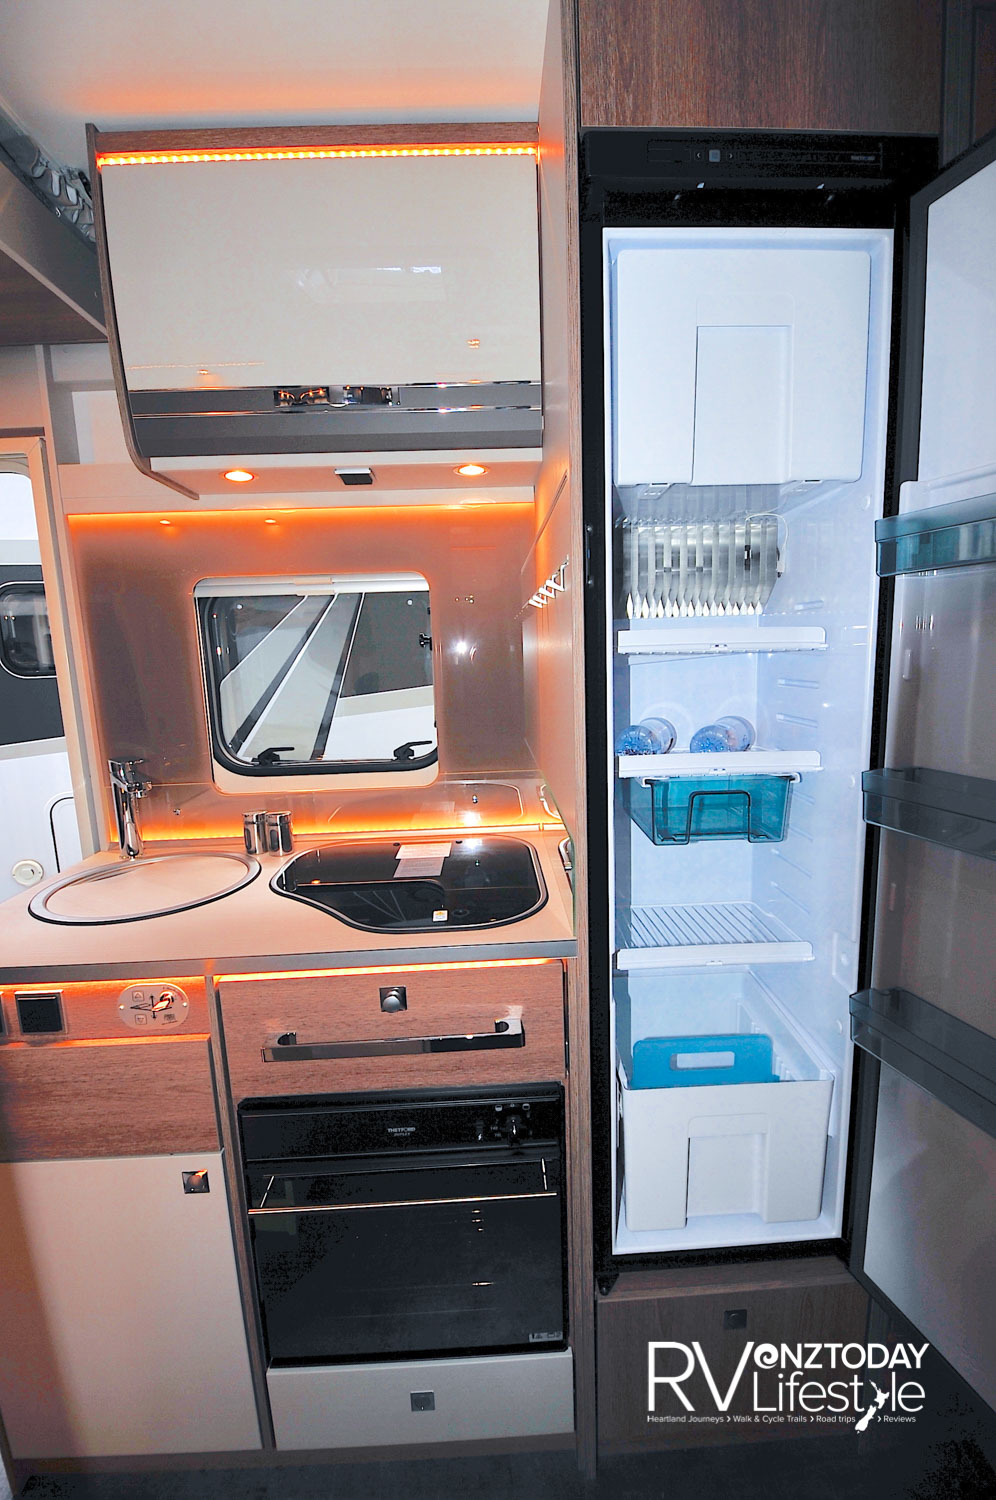 A compact kitchen, a good-sized tower fridge with freezer box. Under-bench gas oven with storage drawers above and below. Covers over the stainless sink and gas hob increase the useable space, and a bench extension is on the end. Splashback, and opening window behind, with more storage overhead. Lots of ambience strip-lighting here as well as LED spotlights